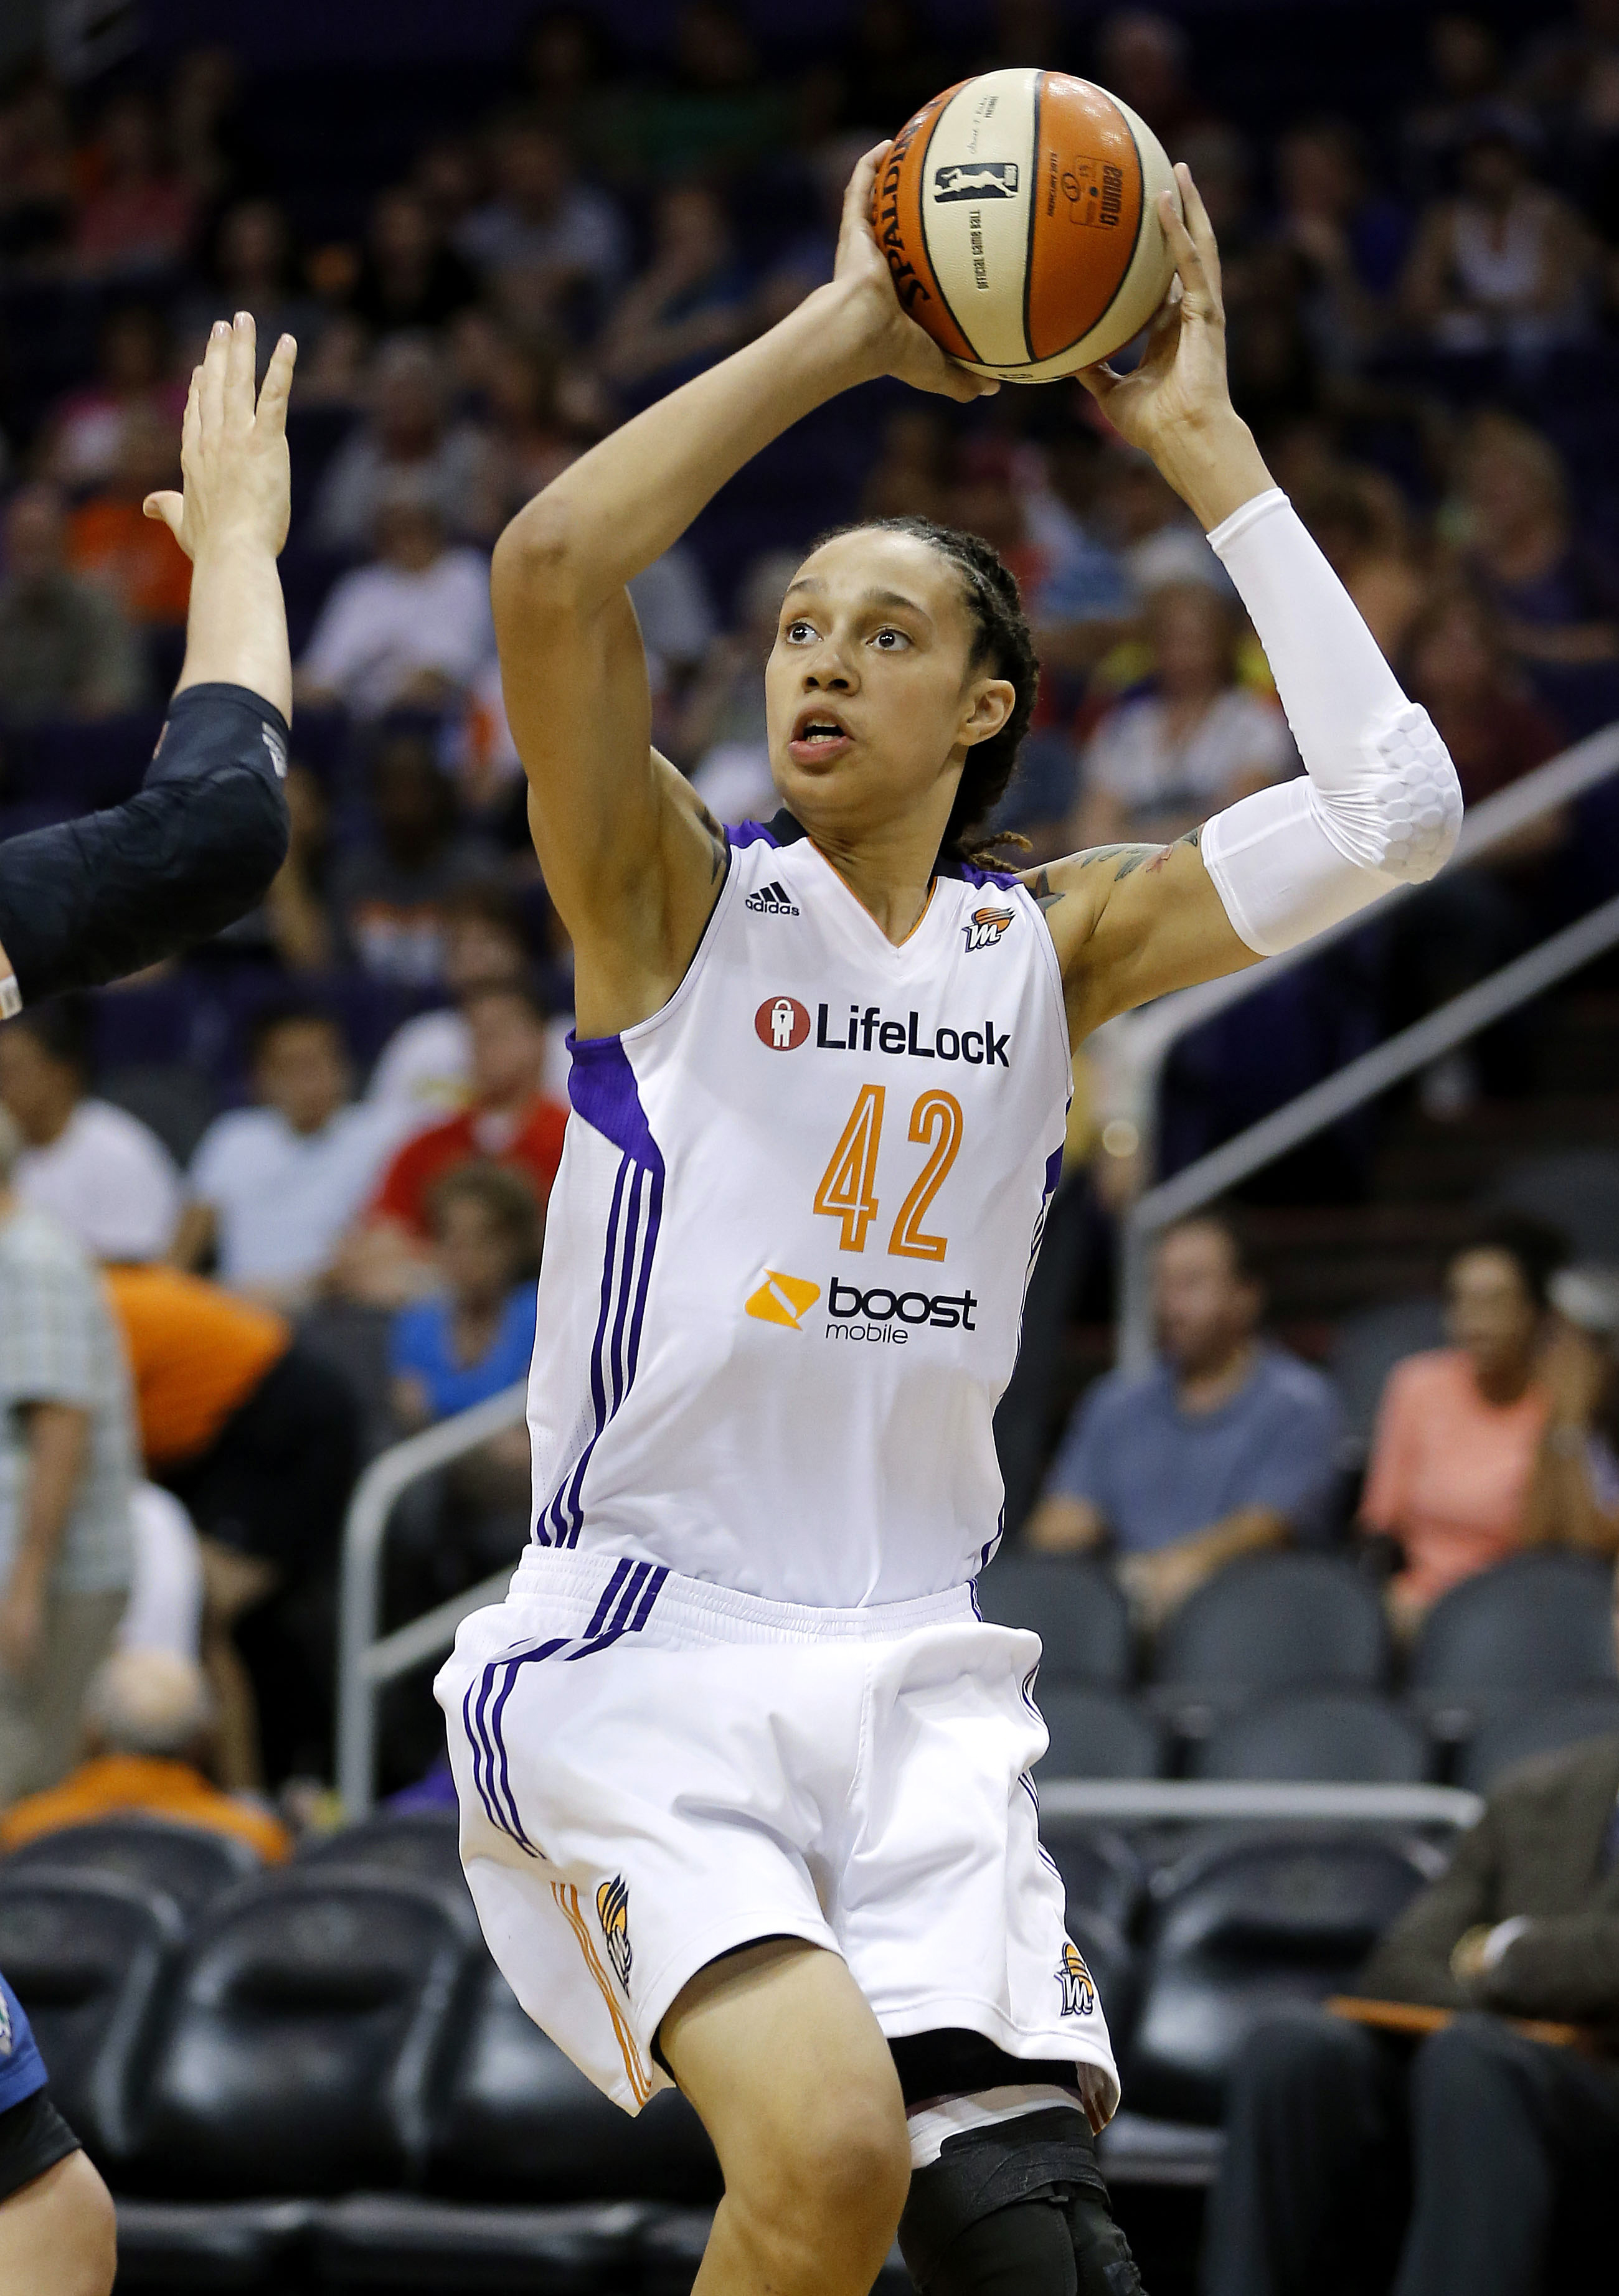 Phoenix Mercury center Brittney Griner shoots against the Minnesota Lynx during a game in Phoenix in 2013. Griner, who is one of a handful of WNBA athletes who have publicly identified themselves as lesbian, was happy the league was embracing the community.